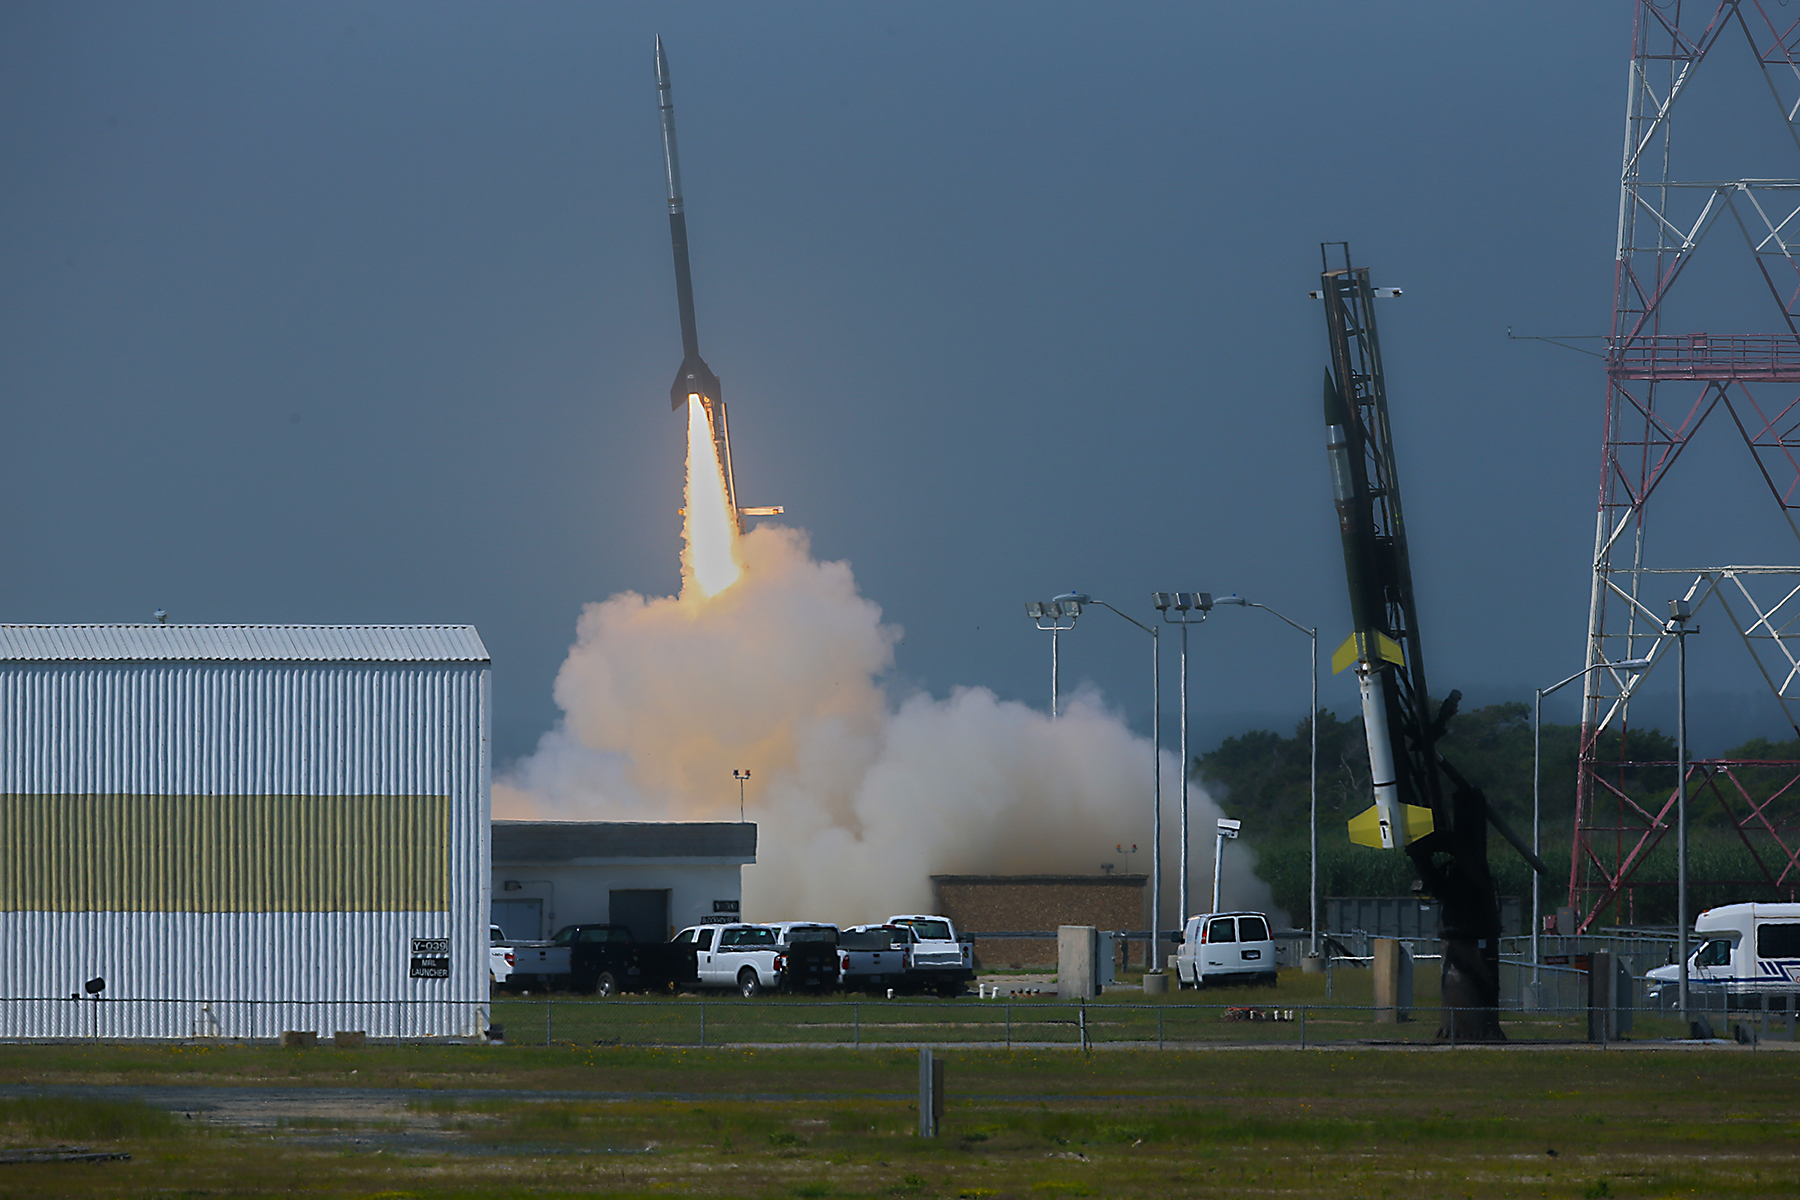 Rockets' Red Glare! NASA Marks Fourth of July with Double Launch